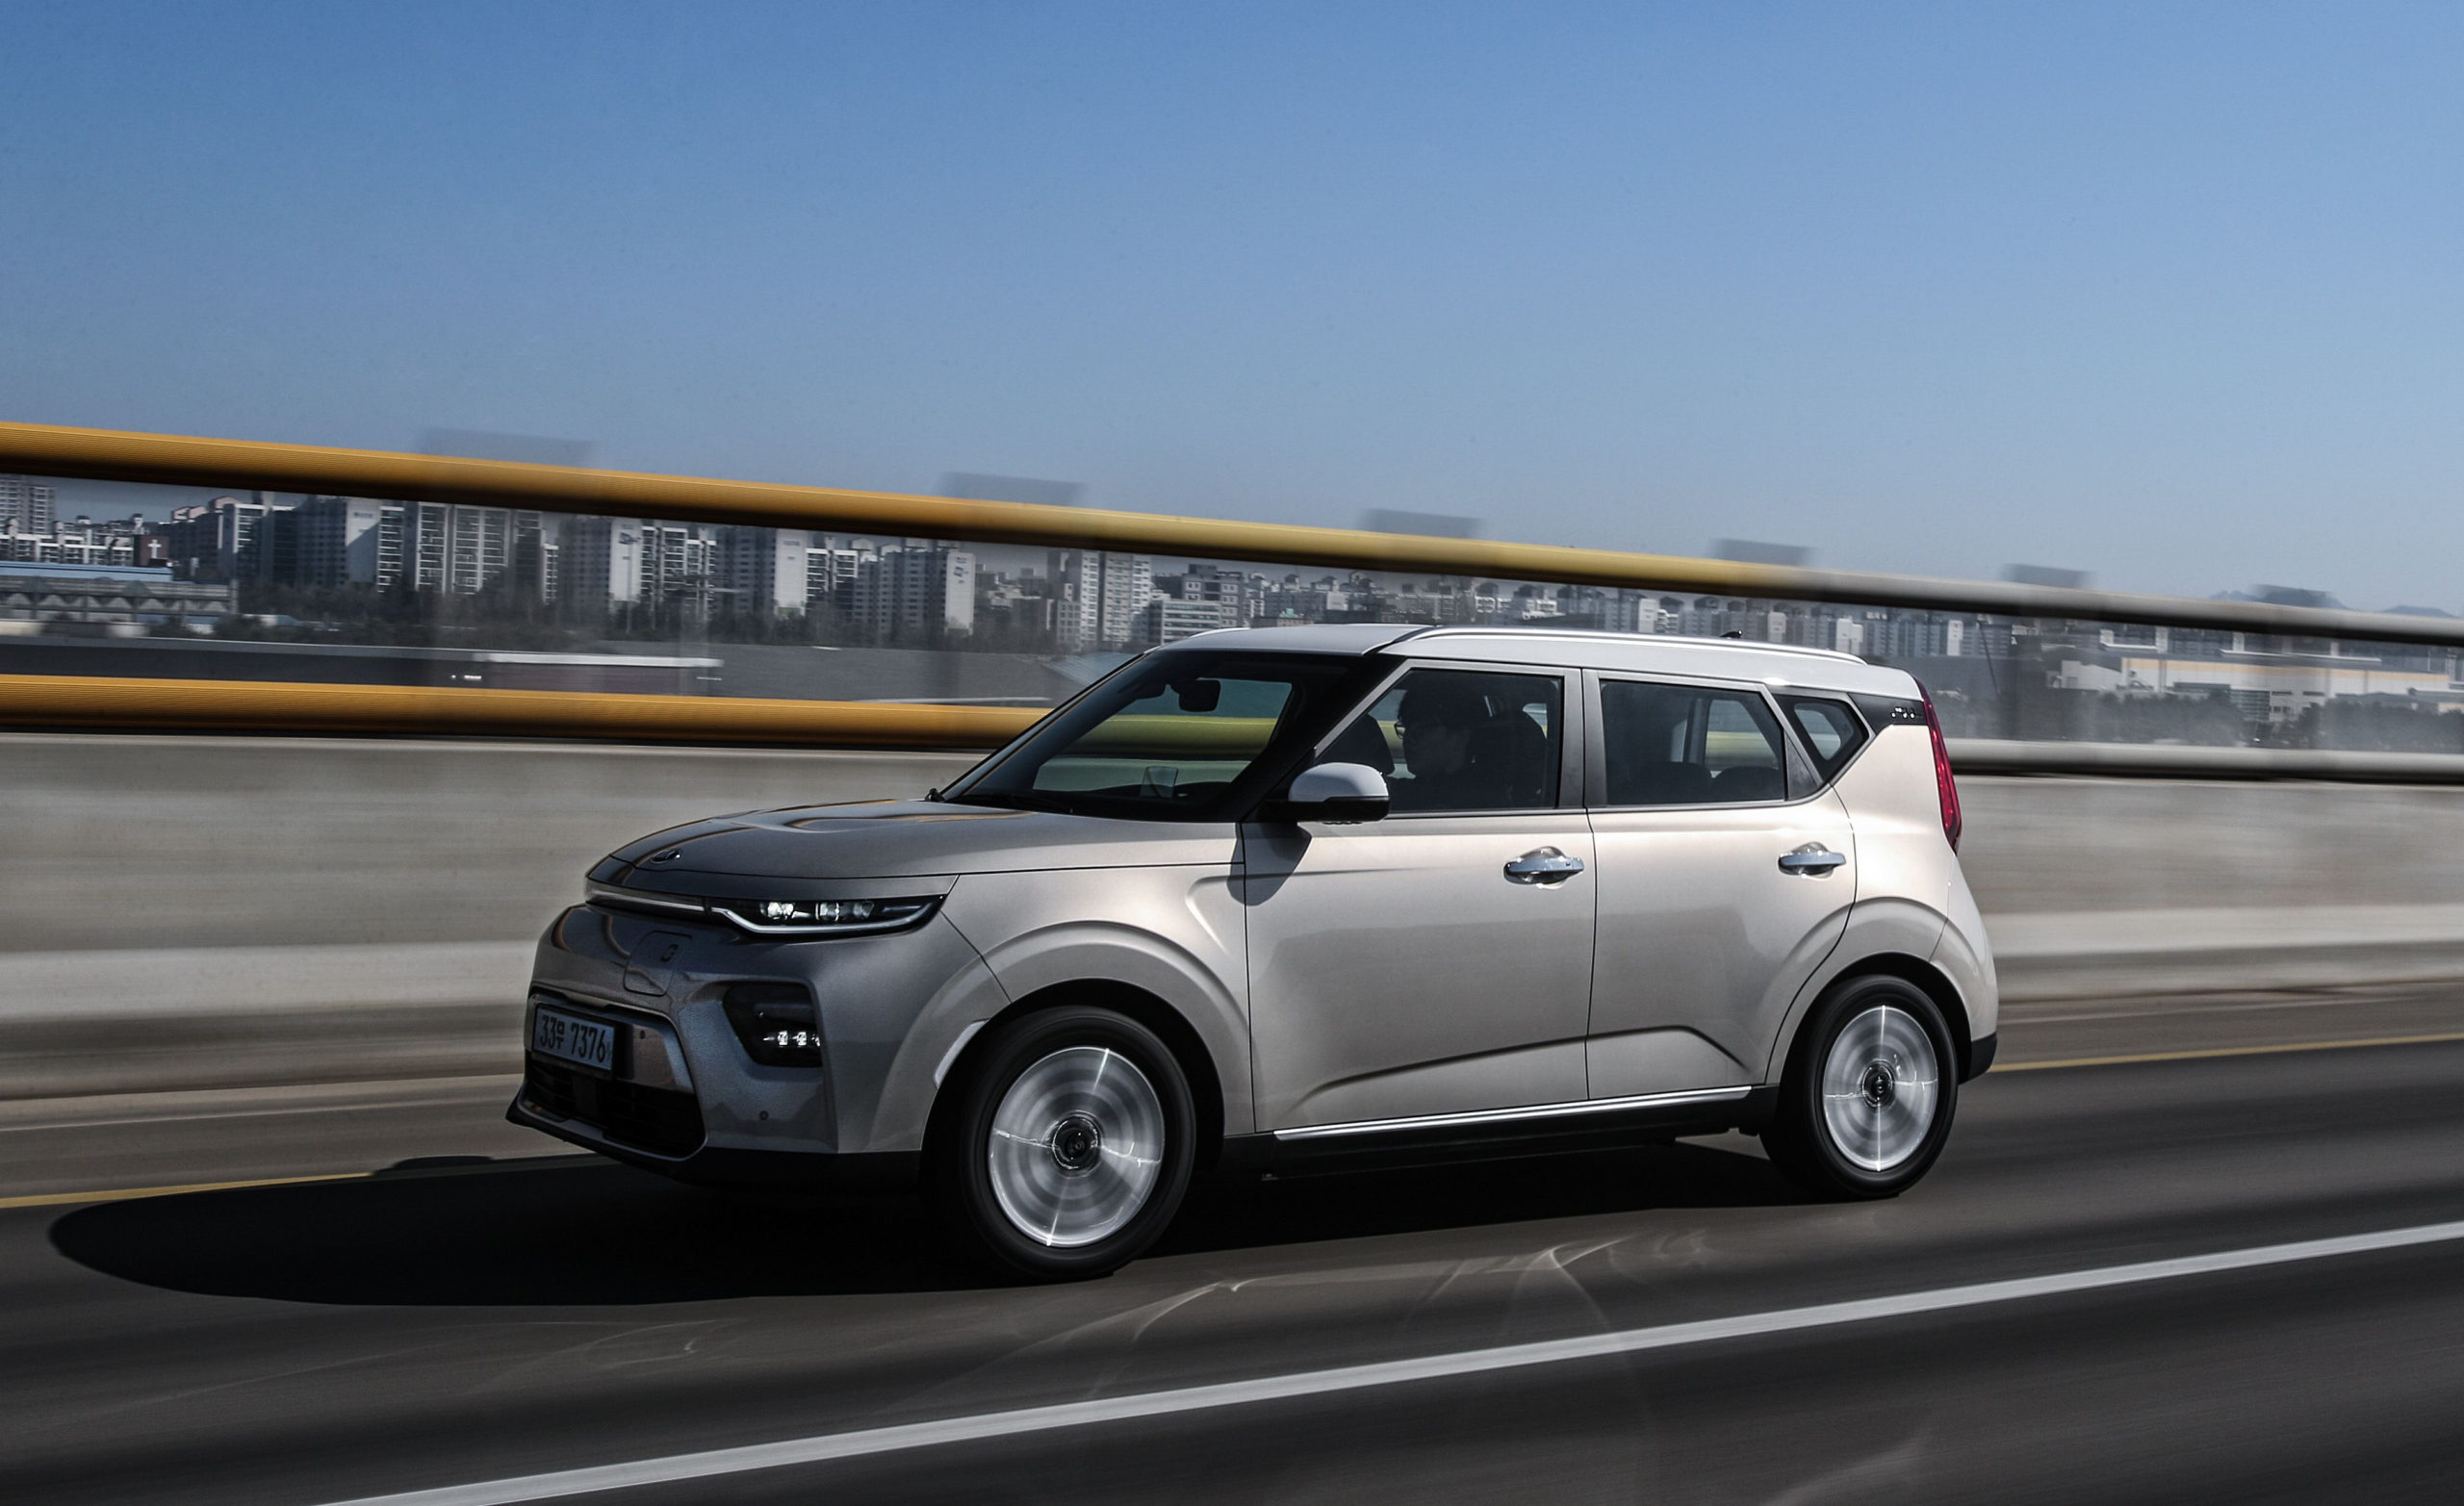 2020 Kia Soul Ev First Drive: More Powerful, More Range - 2022 Kia Soul Black Configurations, Electric Interior